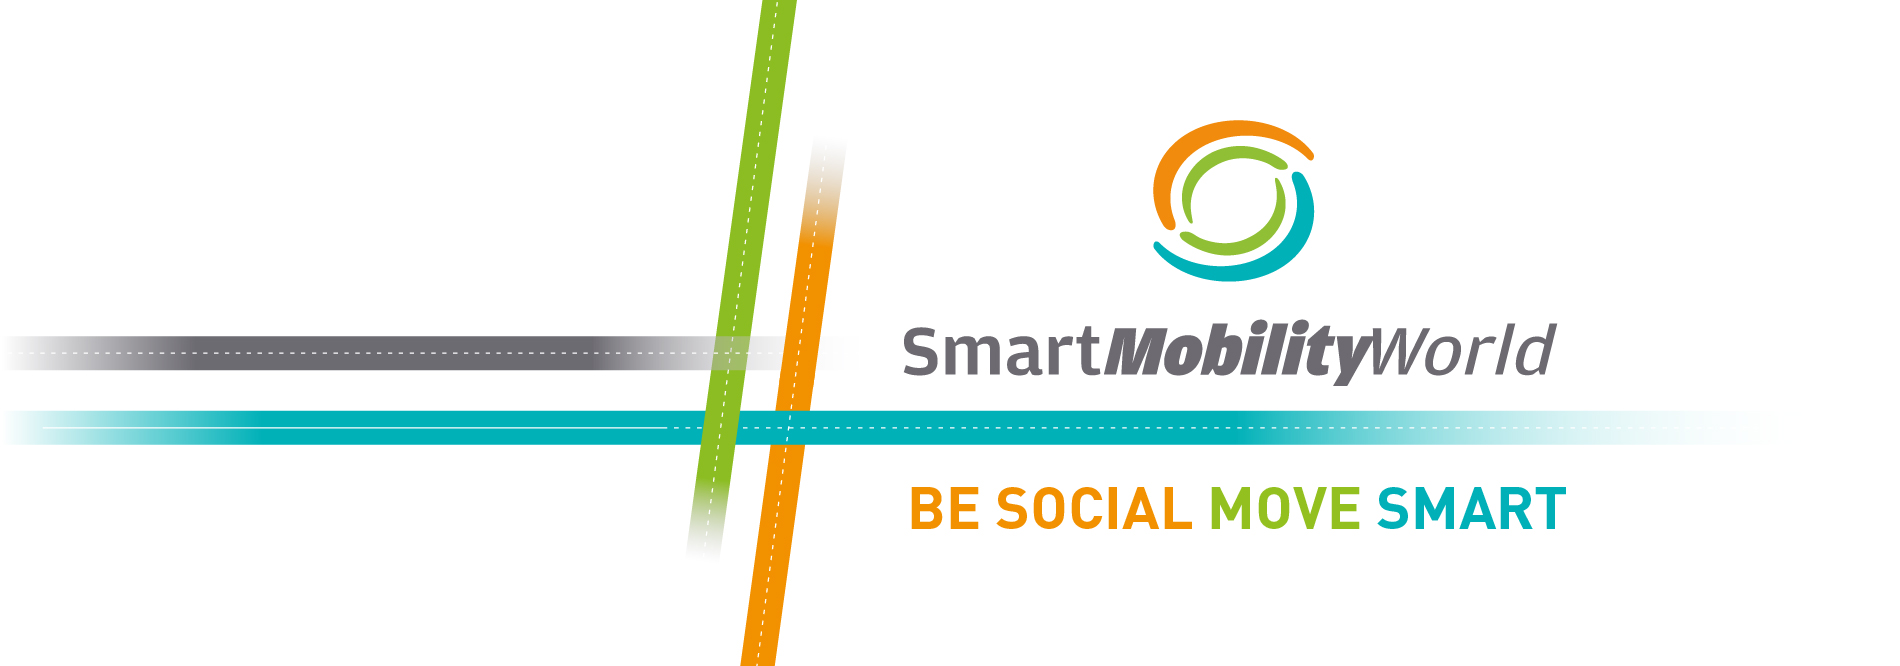 smart mobility world tecnolario